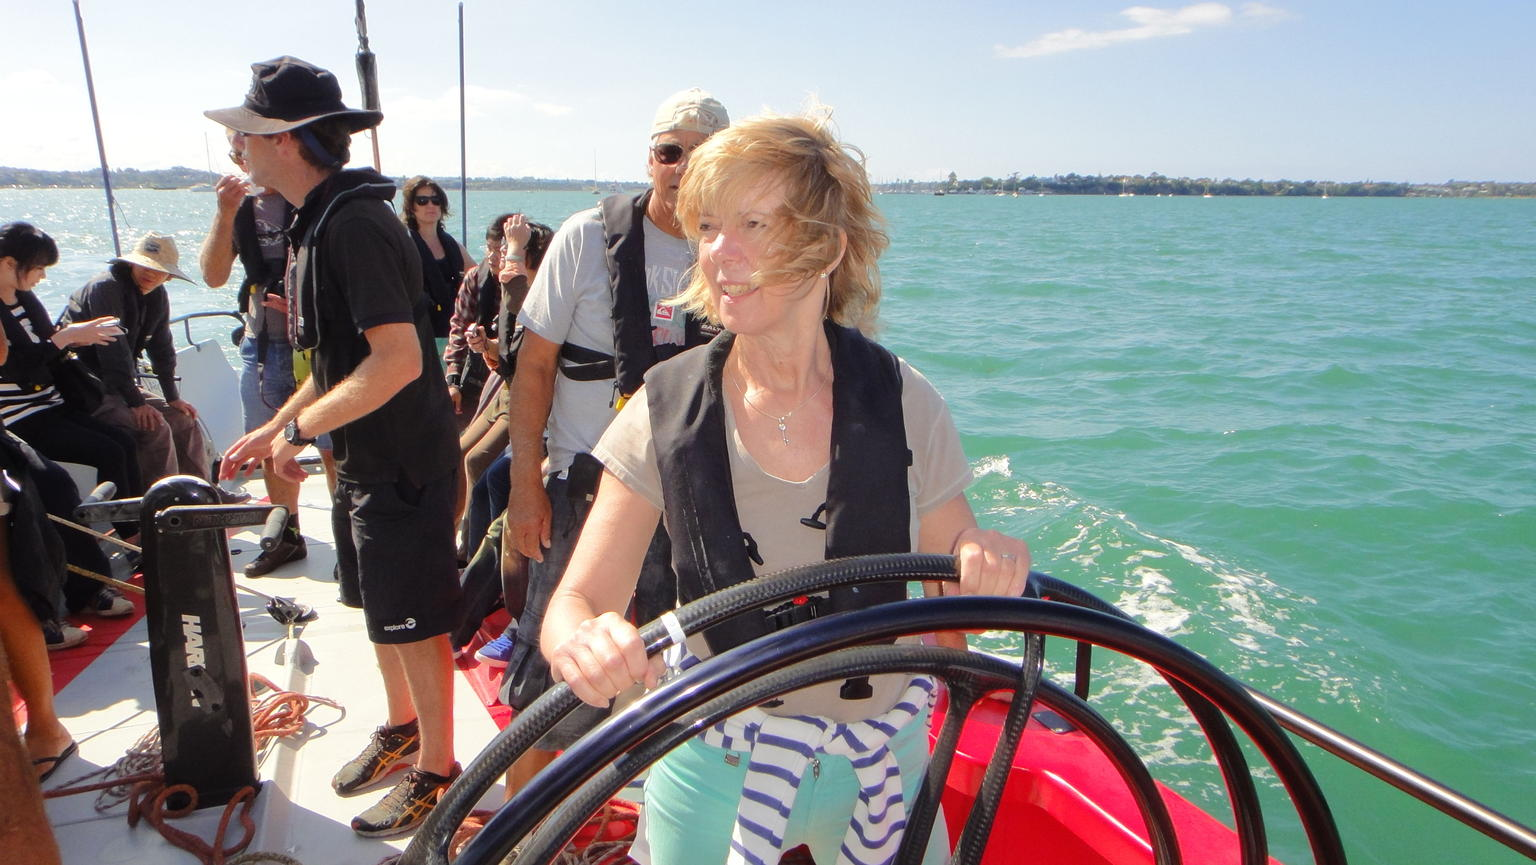 MORE PHOTOS, America's Cup Sailing on Auckland's Waitemata Harbour